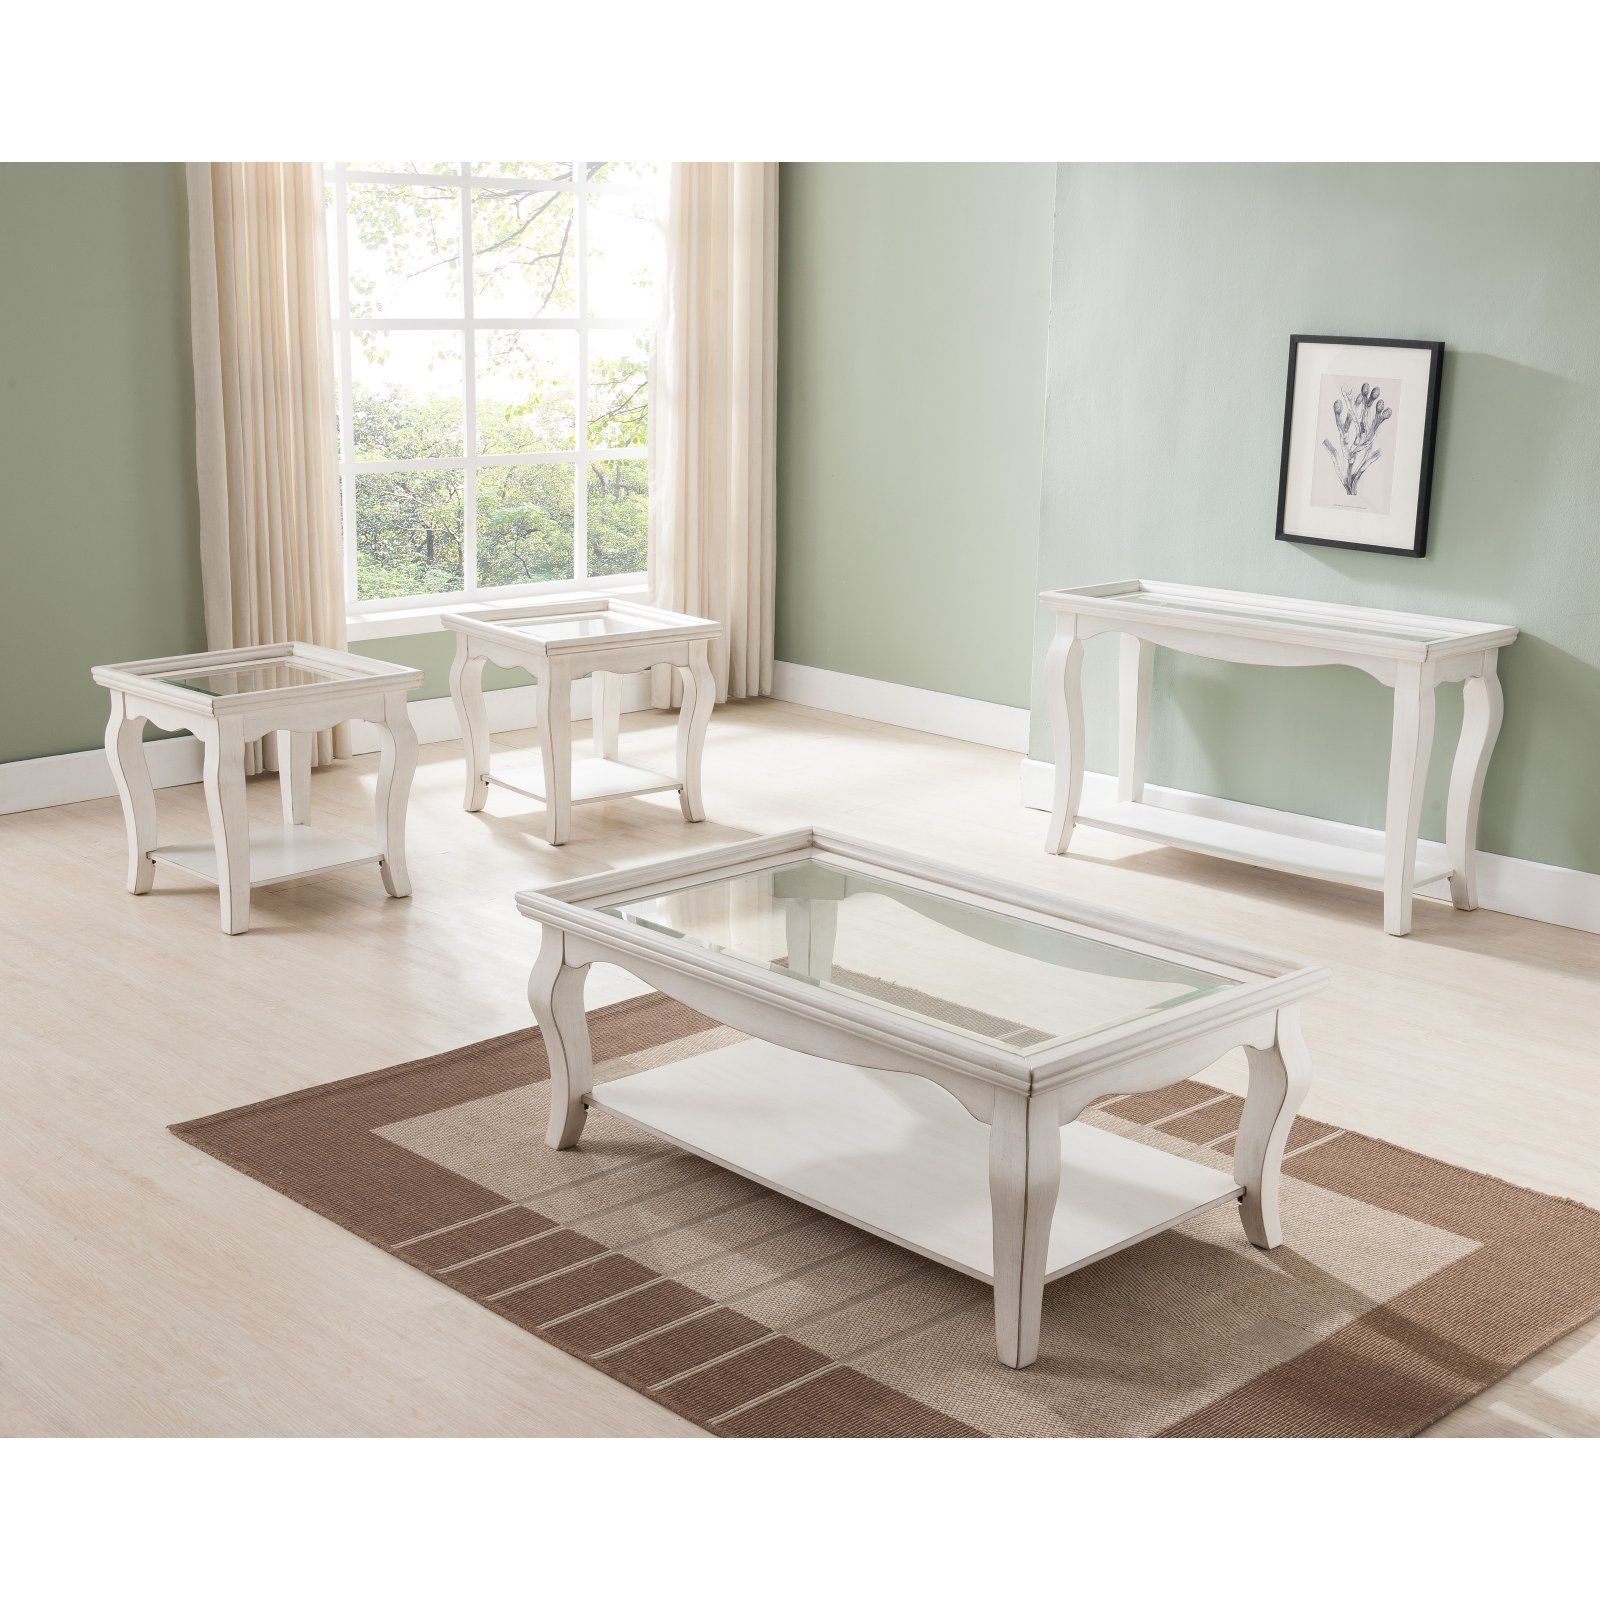 Simmons Casegoods Buttermilk White Cocktail Table Walmart Com White Cocktail Tables Coffee Table 3 Piece Coffee Table Set [ 1600 x 1600 Pixel ]